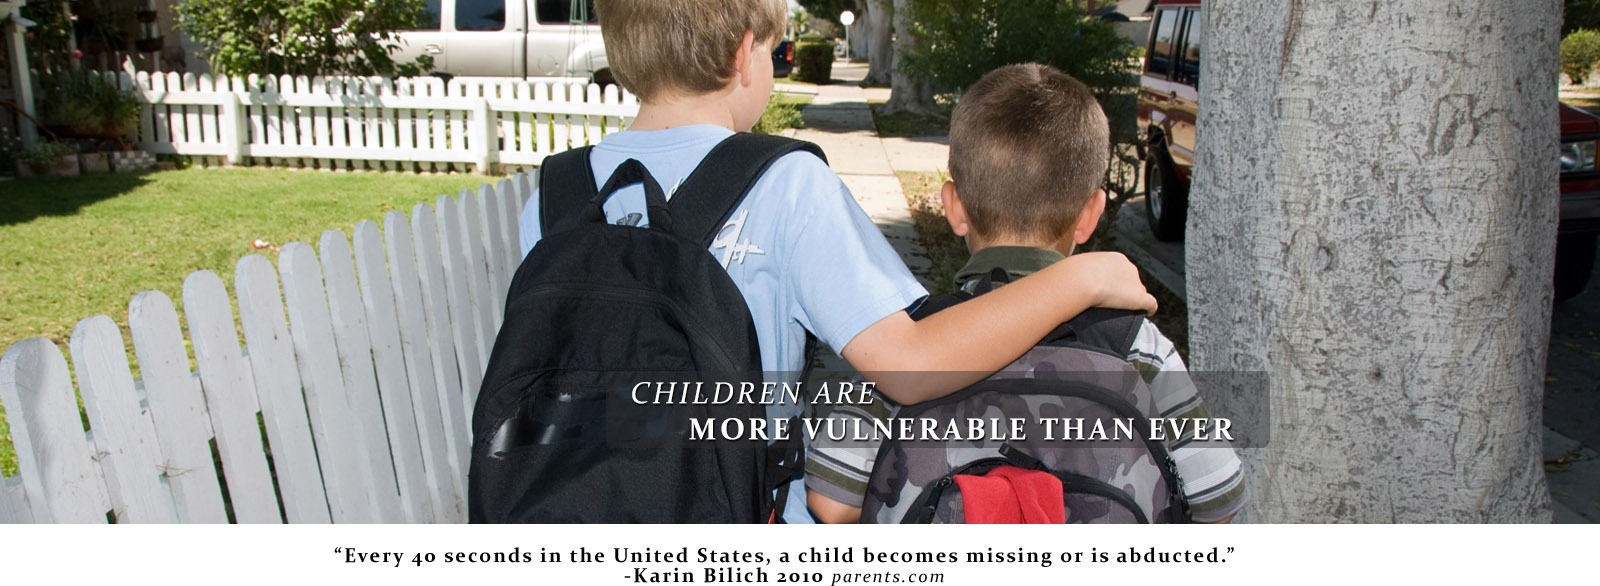 Children are more vulnerable than ever